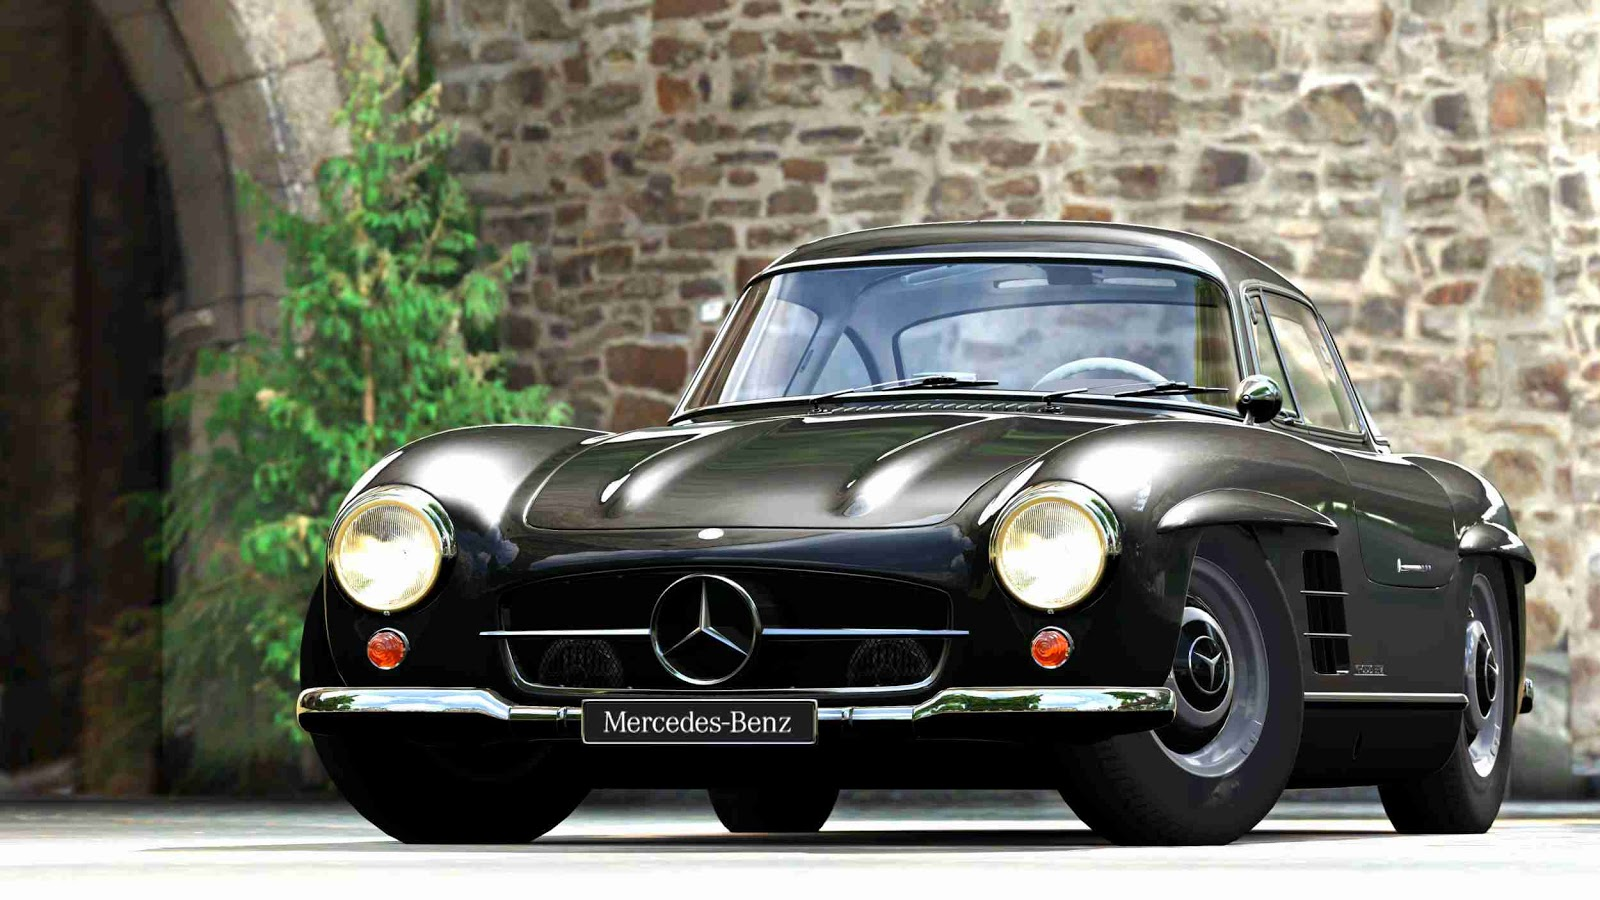 The old mercedes benz model 300 sl welcome to expert drivers for Old mercedes benz